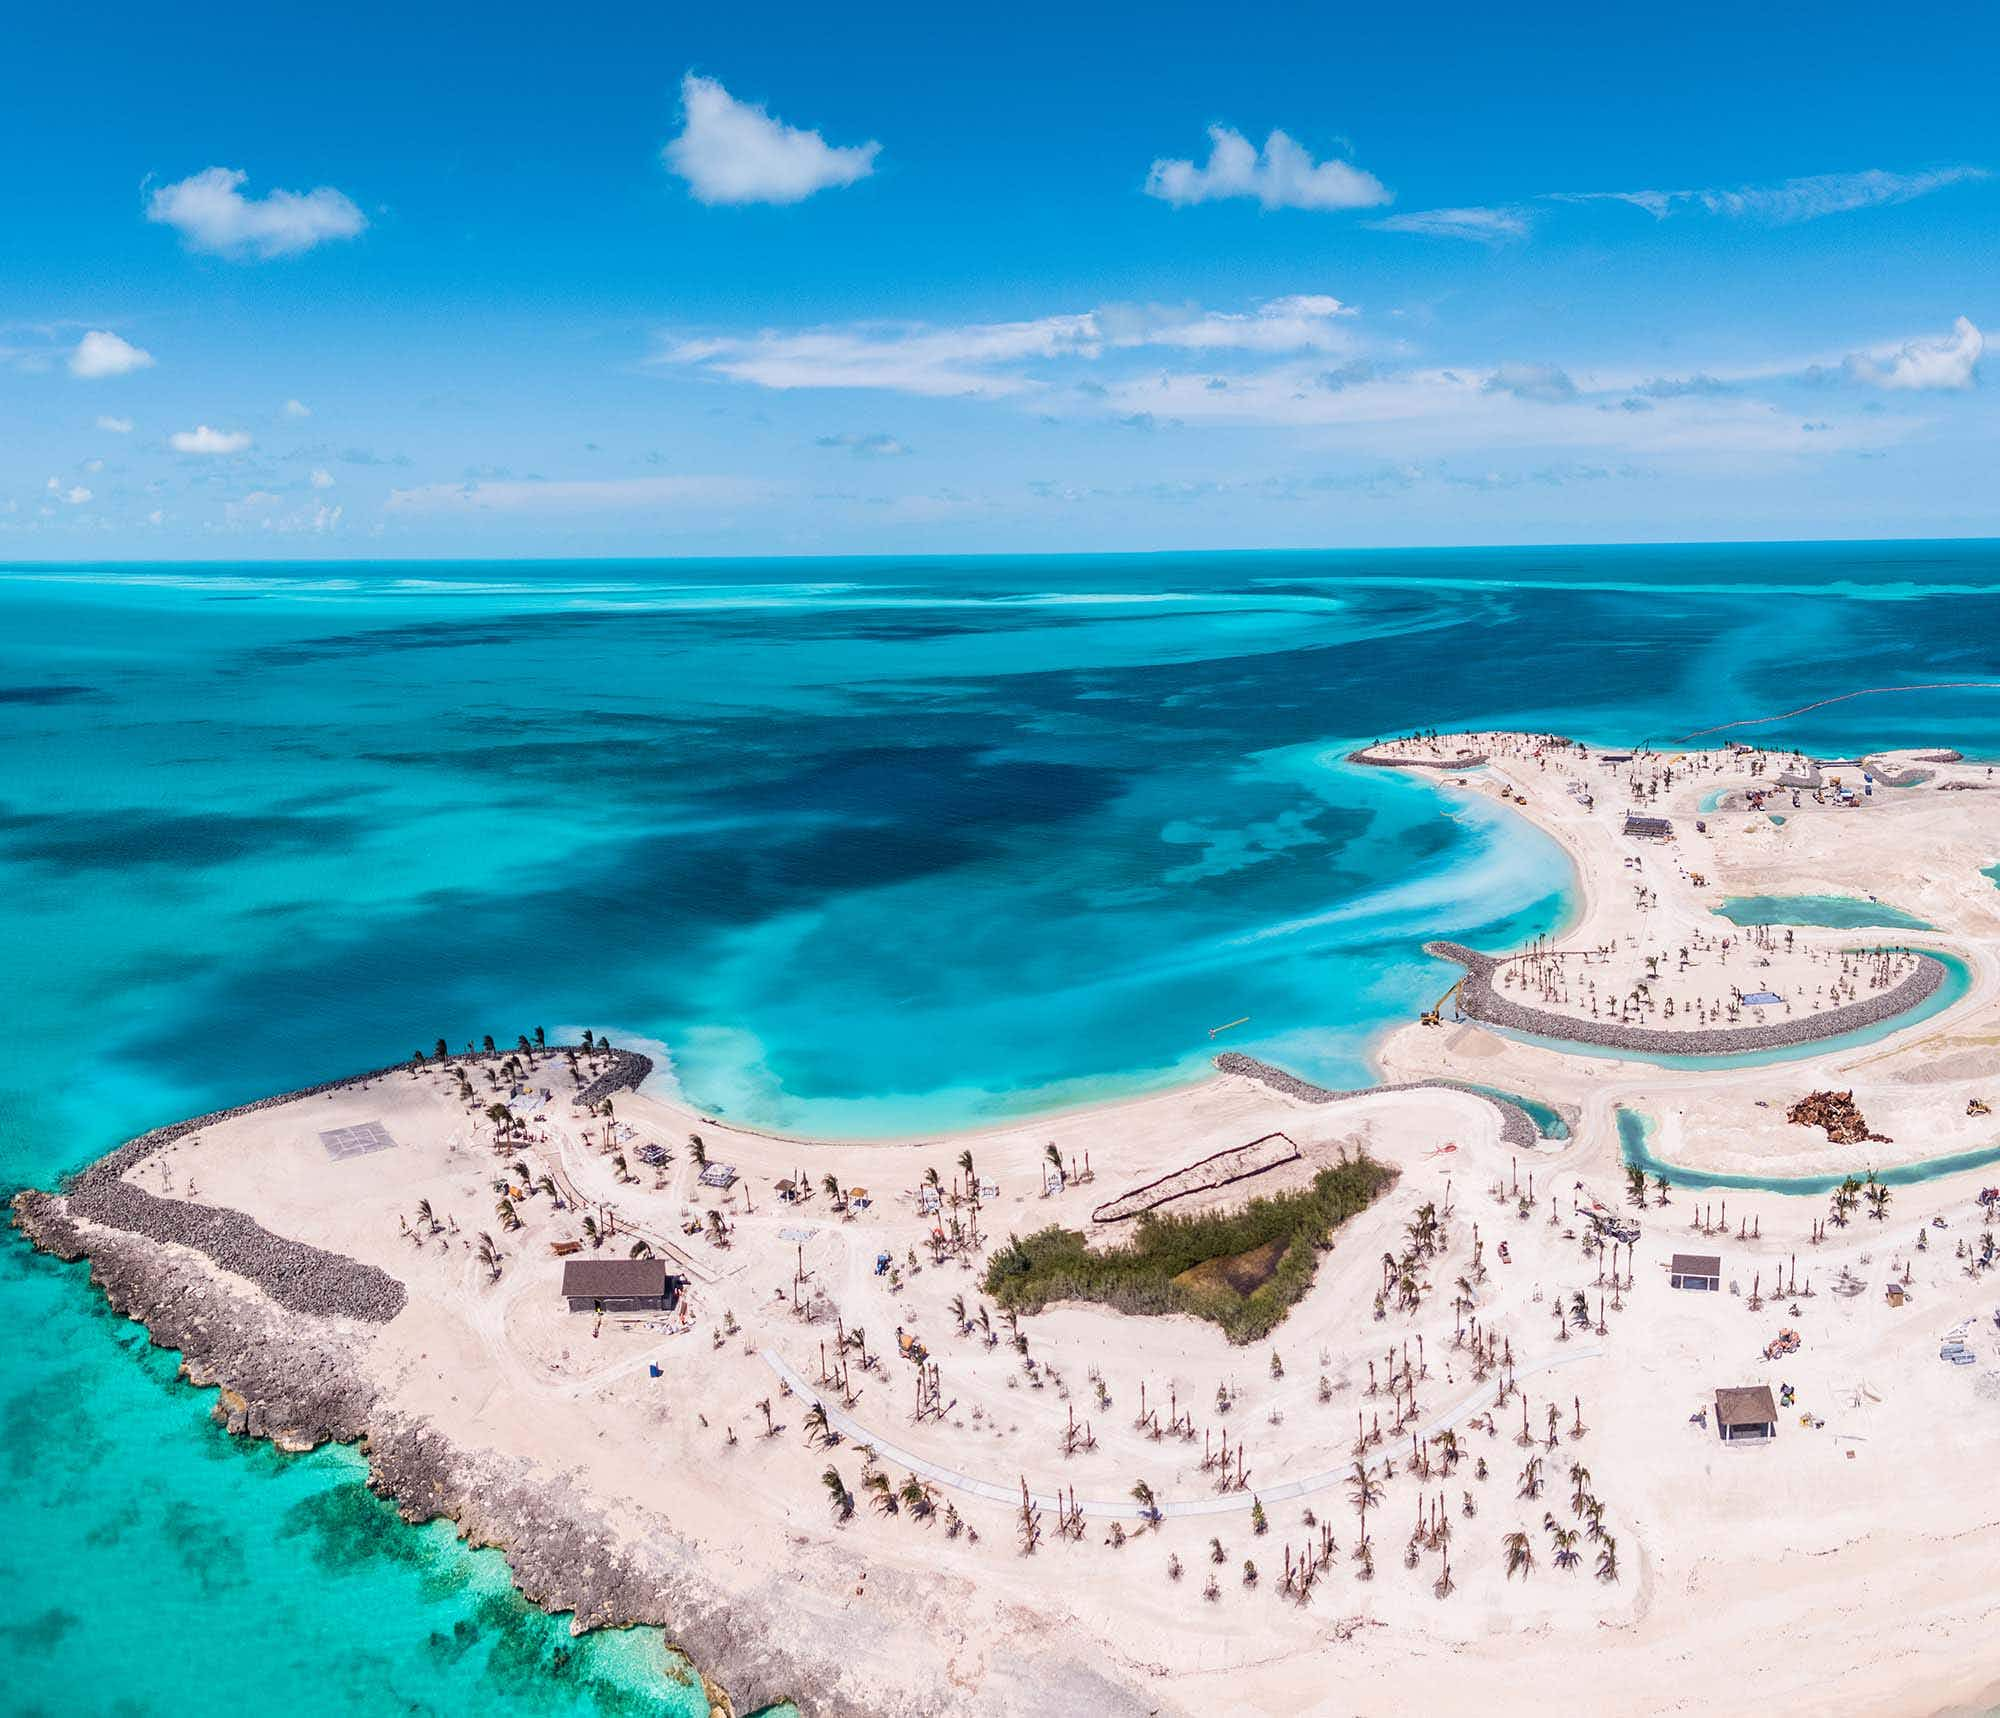 MSC Cruises turns former sand-mining site into eco-friendly marine reserve